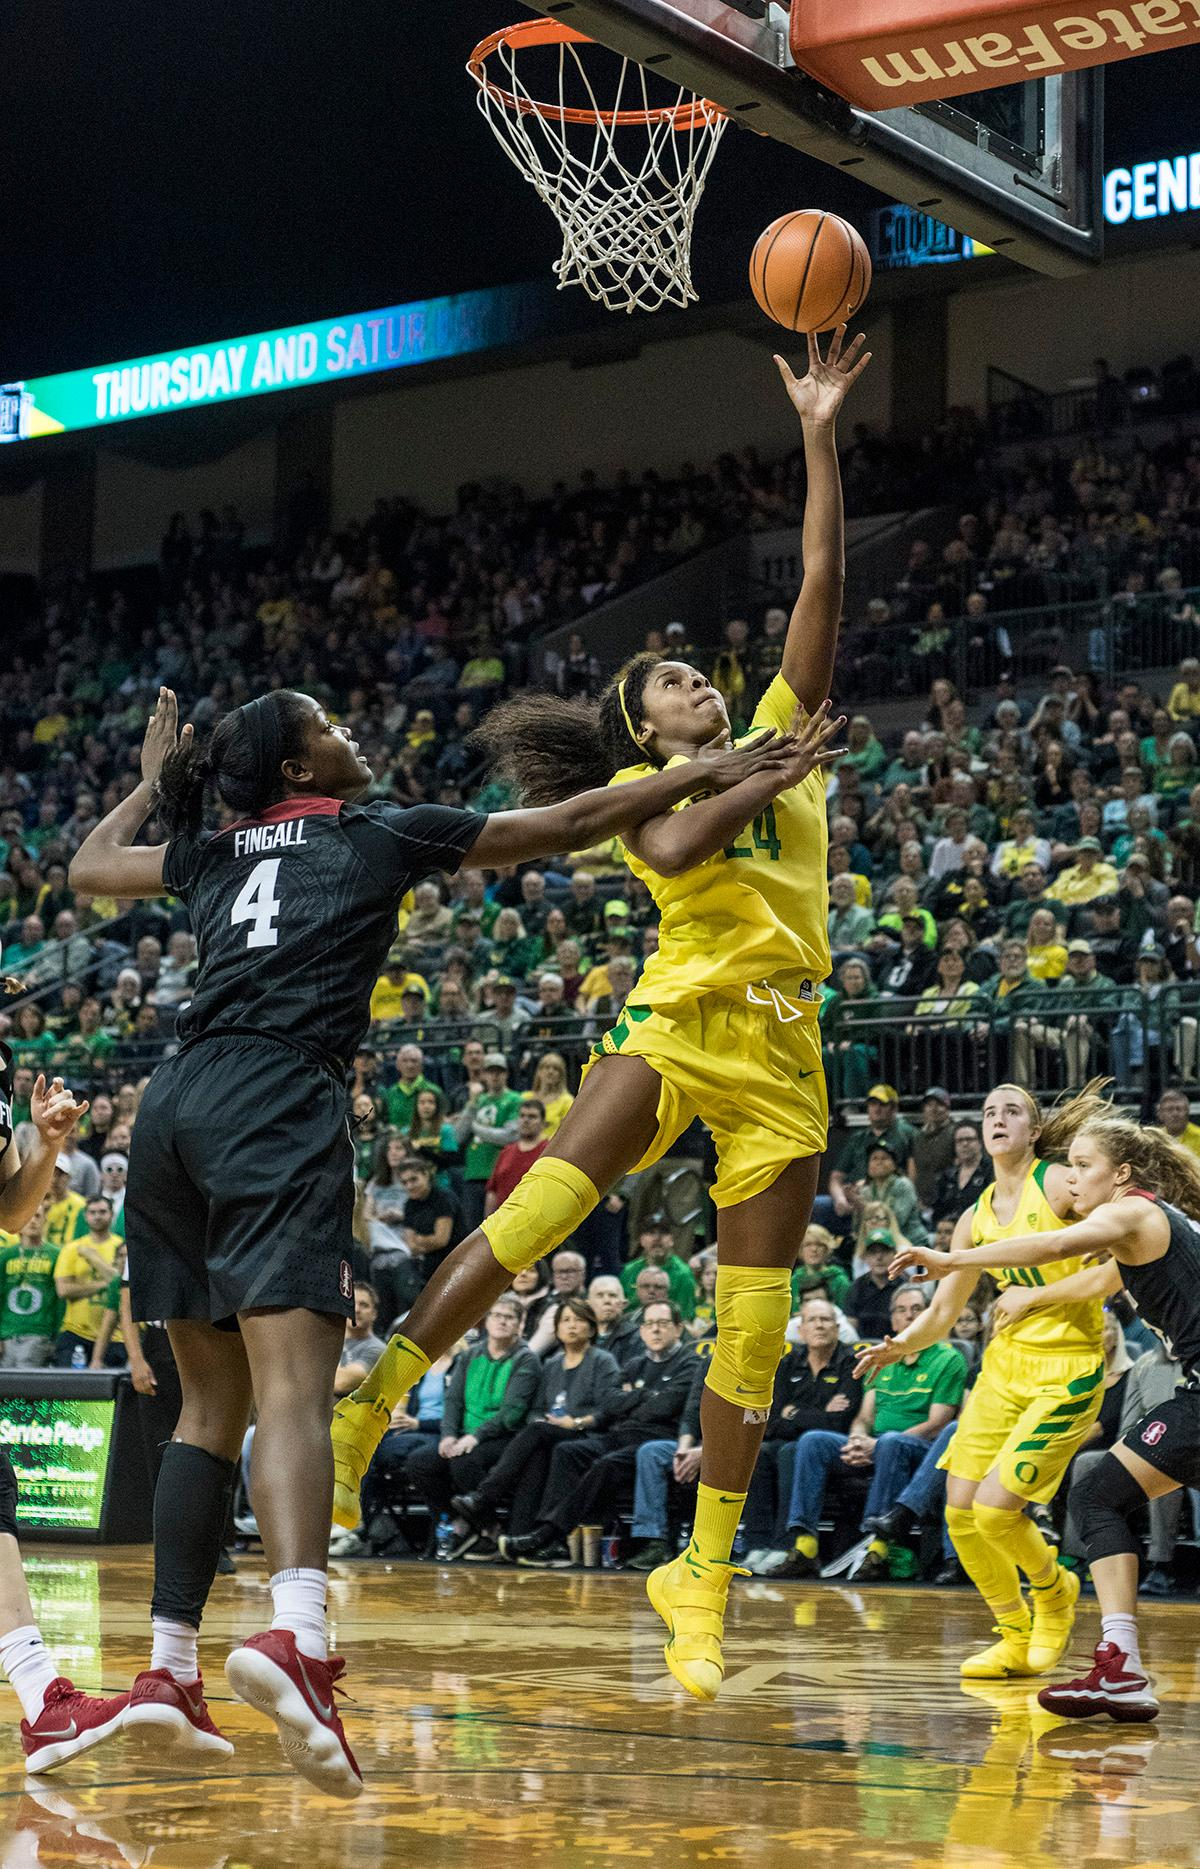 Oregon Ducks Ruthy Hebard (#24) makes a layup. The Stanford Cardinal defeated the Oregon Ducks 78-65 on Sunday afternoon at Matthew Knight Arena. Stanford is now 10-2 in conference play and with this loss the Ducks drop to 10-2. Leading the Stanford Cardinal was Brittany McPhee with 33 points, Alanna Smith with 14 points, and Kiana Williams with 14 points. For the Ducks Sabrina Ionescu led with 22 points, Ruthy Hebard added 16 points, and Satou Sabally put in 14 points. Photo by Rhianna Gelhart, Oregon News Lab